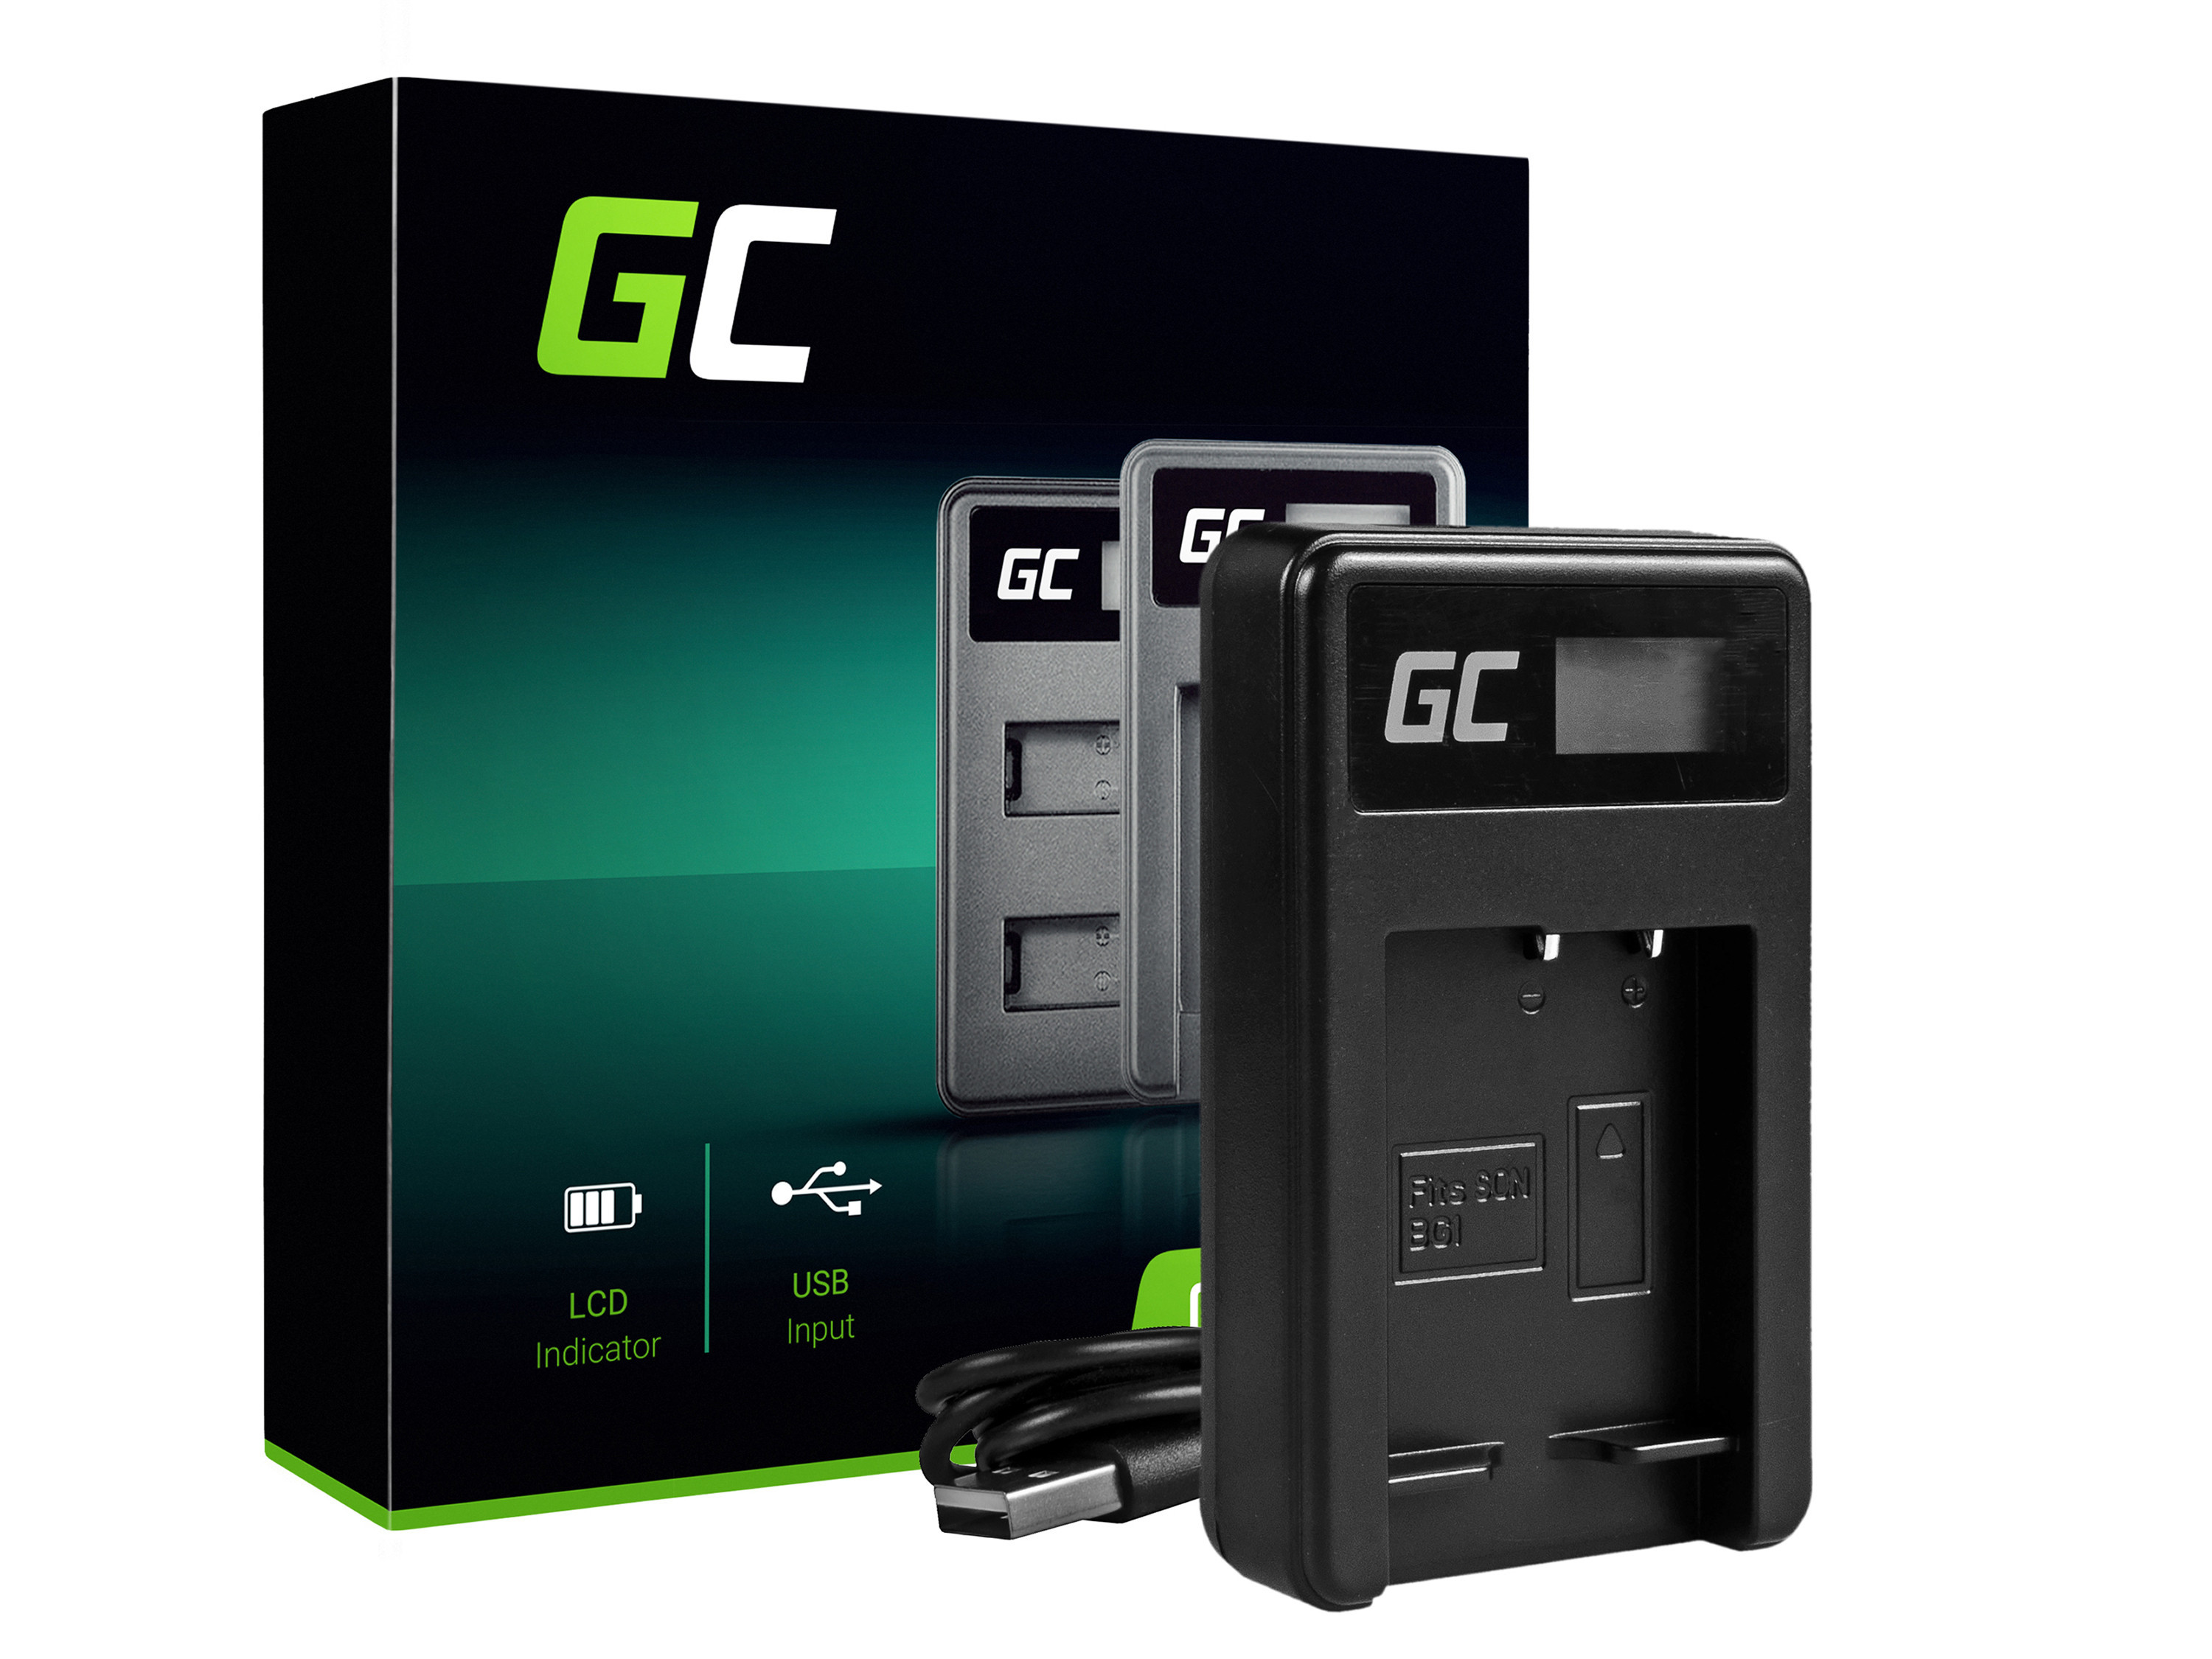 Charger BC-CSG Green Cell® for Sony NP-BG1/NP-FG1, DSC H10, H20, H50, HX5, HX10, T50, W50, W70